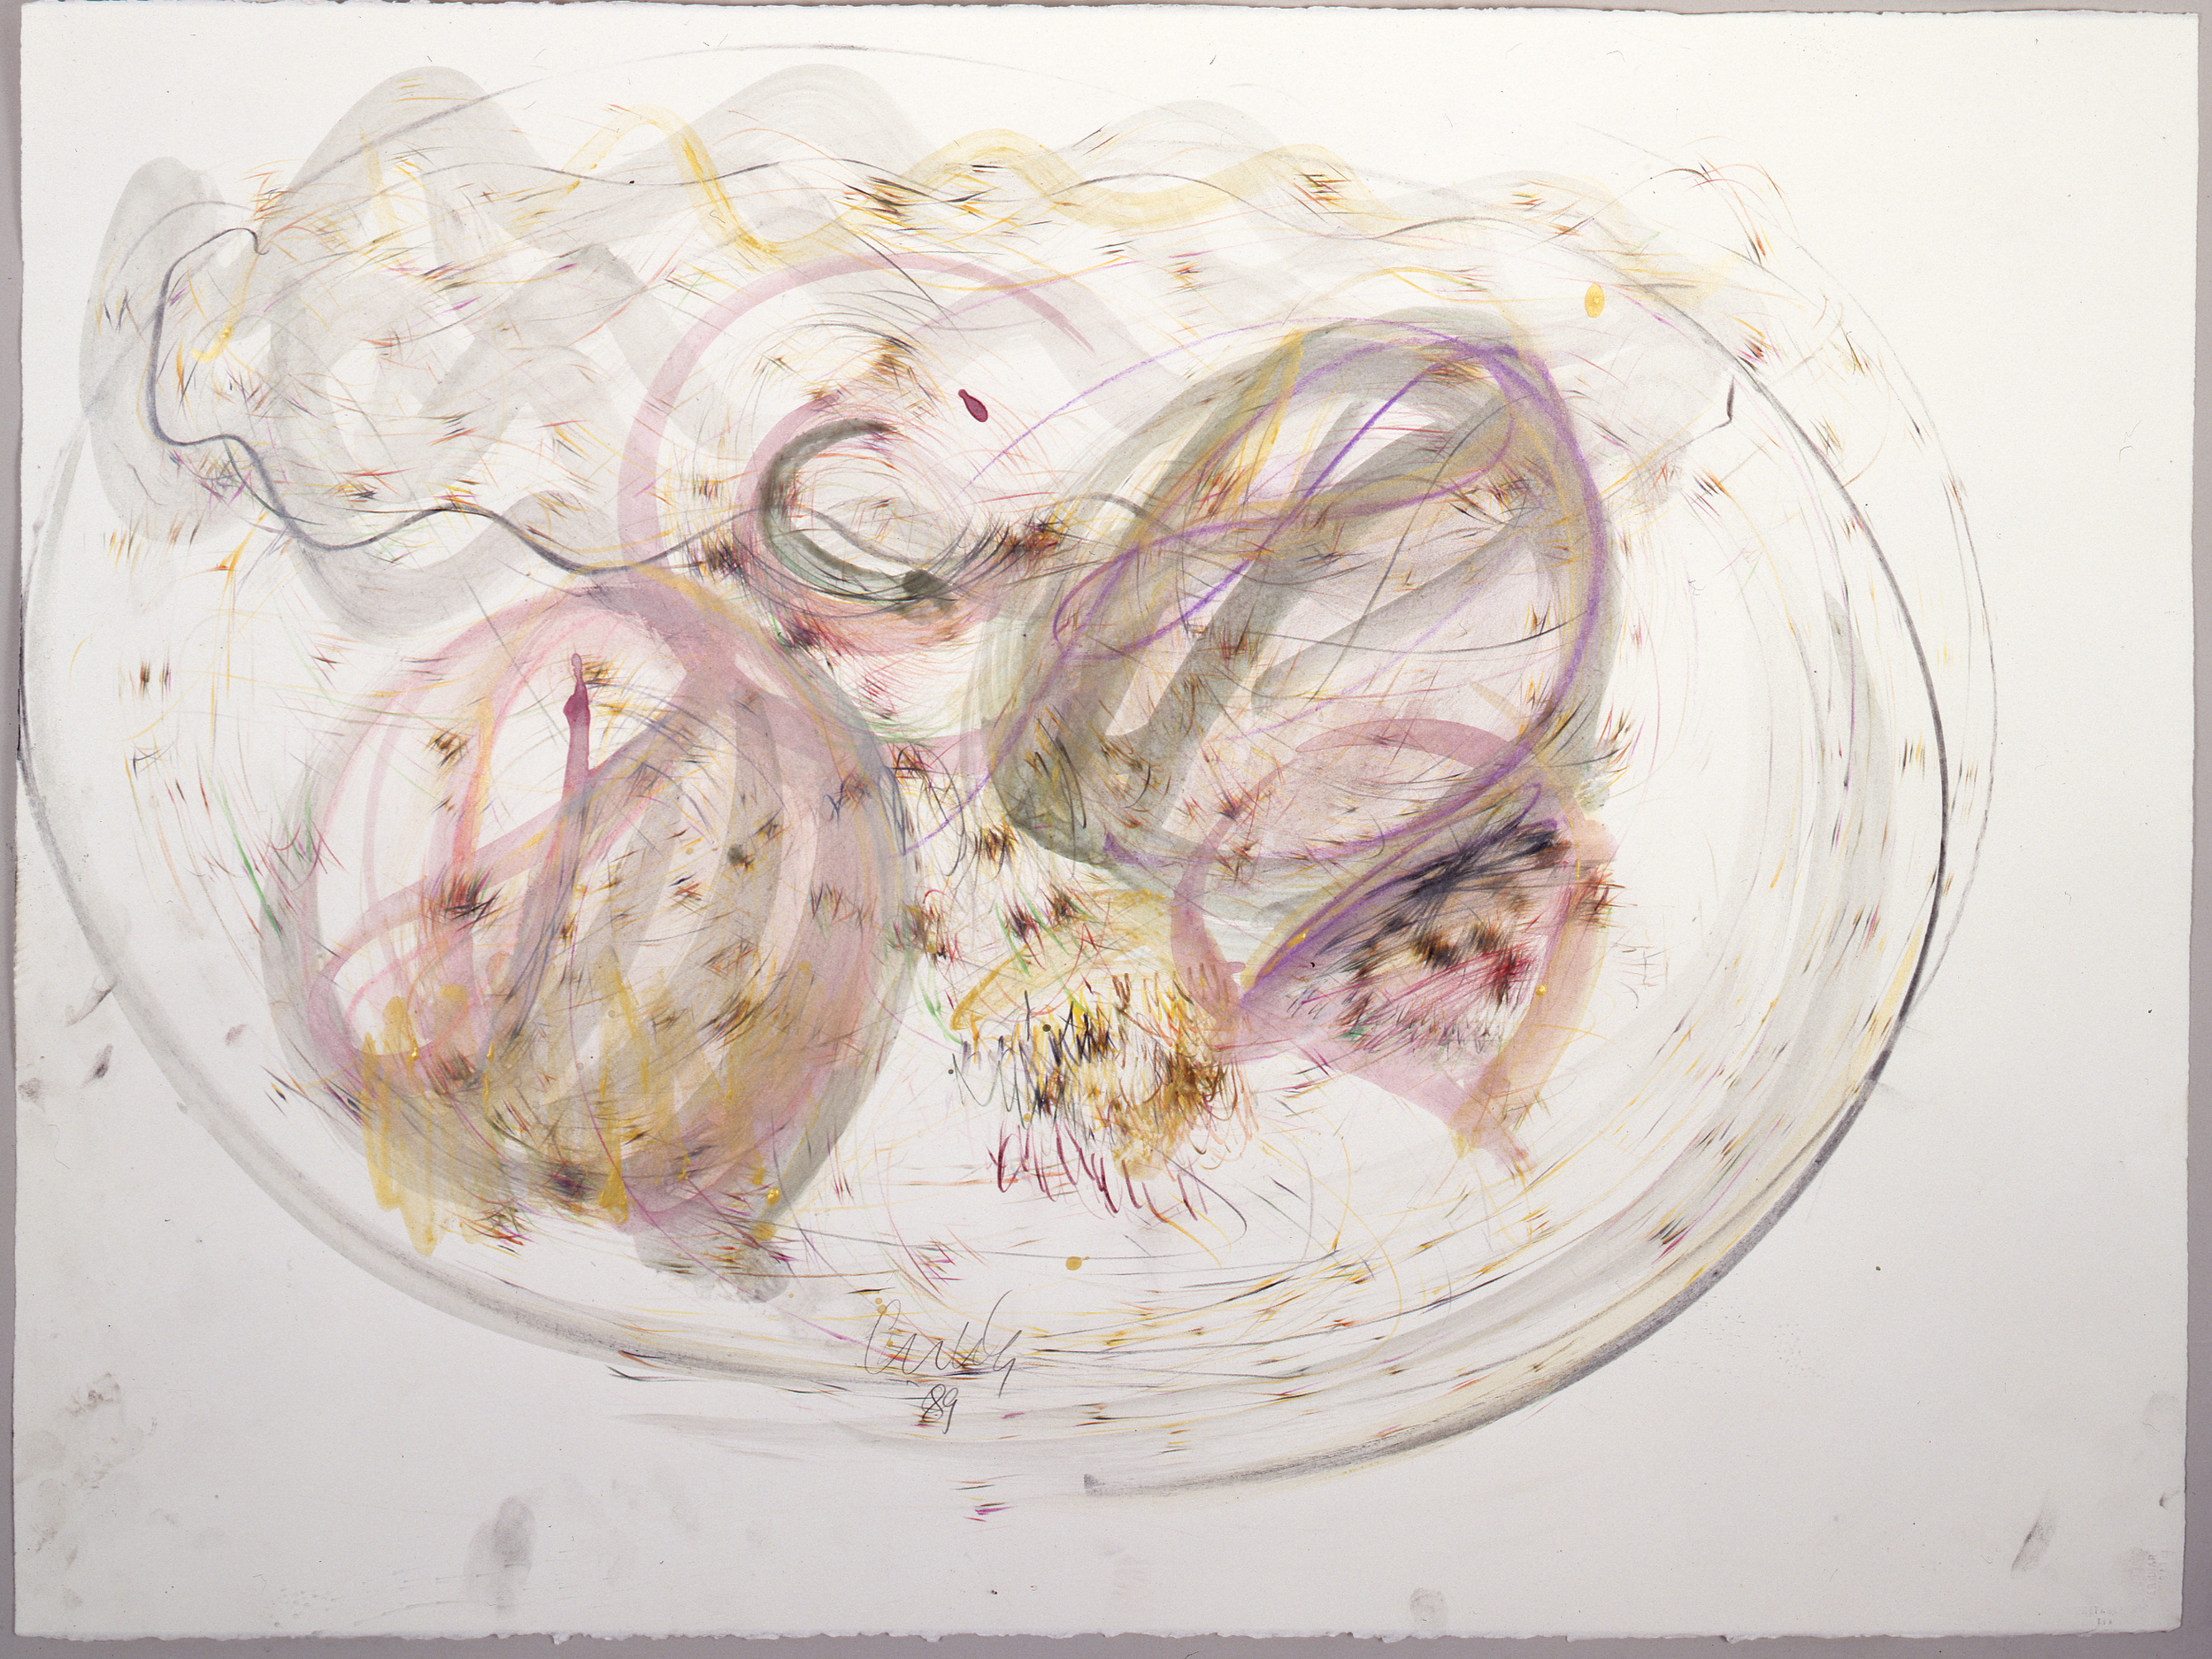 Dale Chihuly, Niijima Drawing #31, (1989, colored pencil, watercolor and graphiteon paper, 22 x 30 inches), DC.373